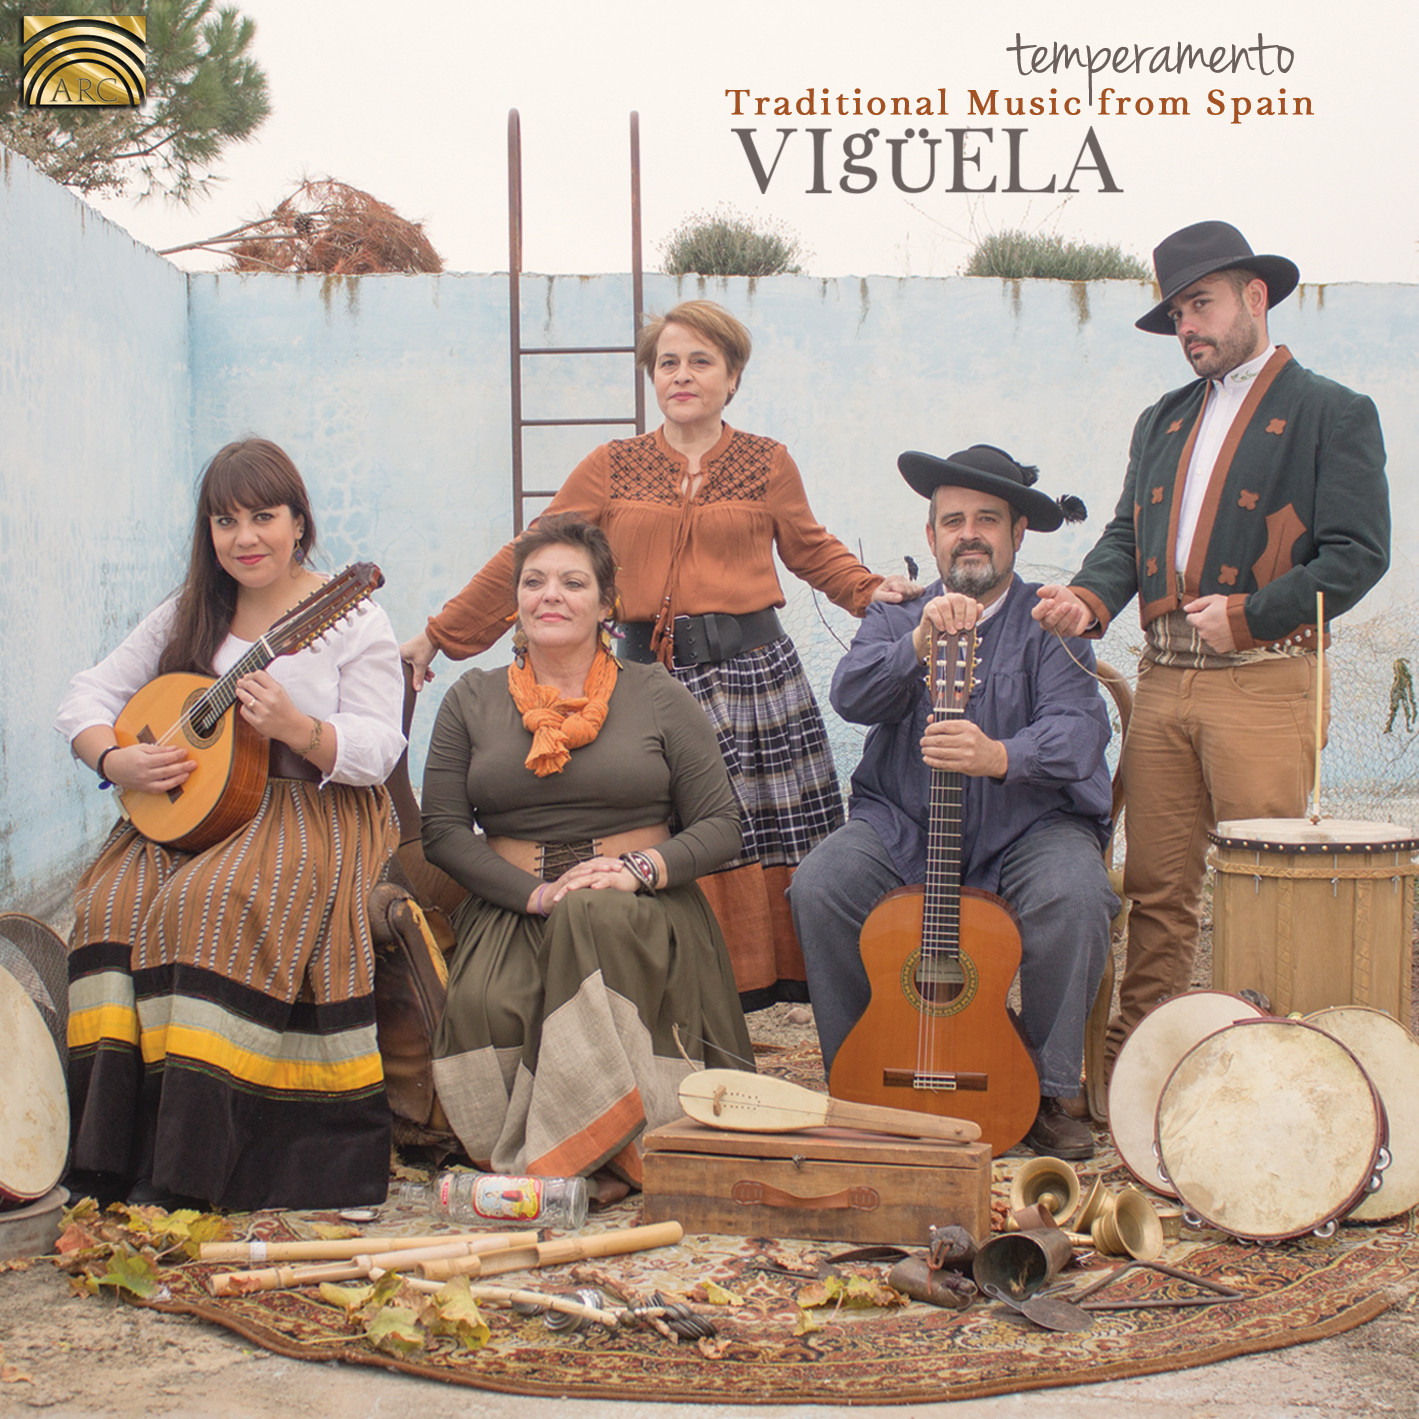 EUCD2635 Temperamento - Traditional Music from Spain